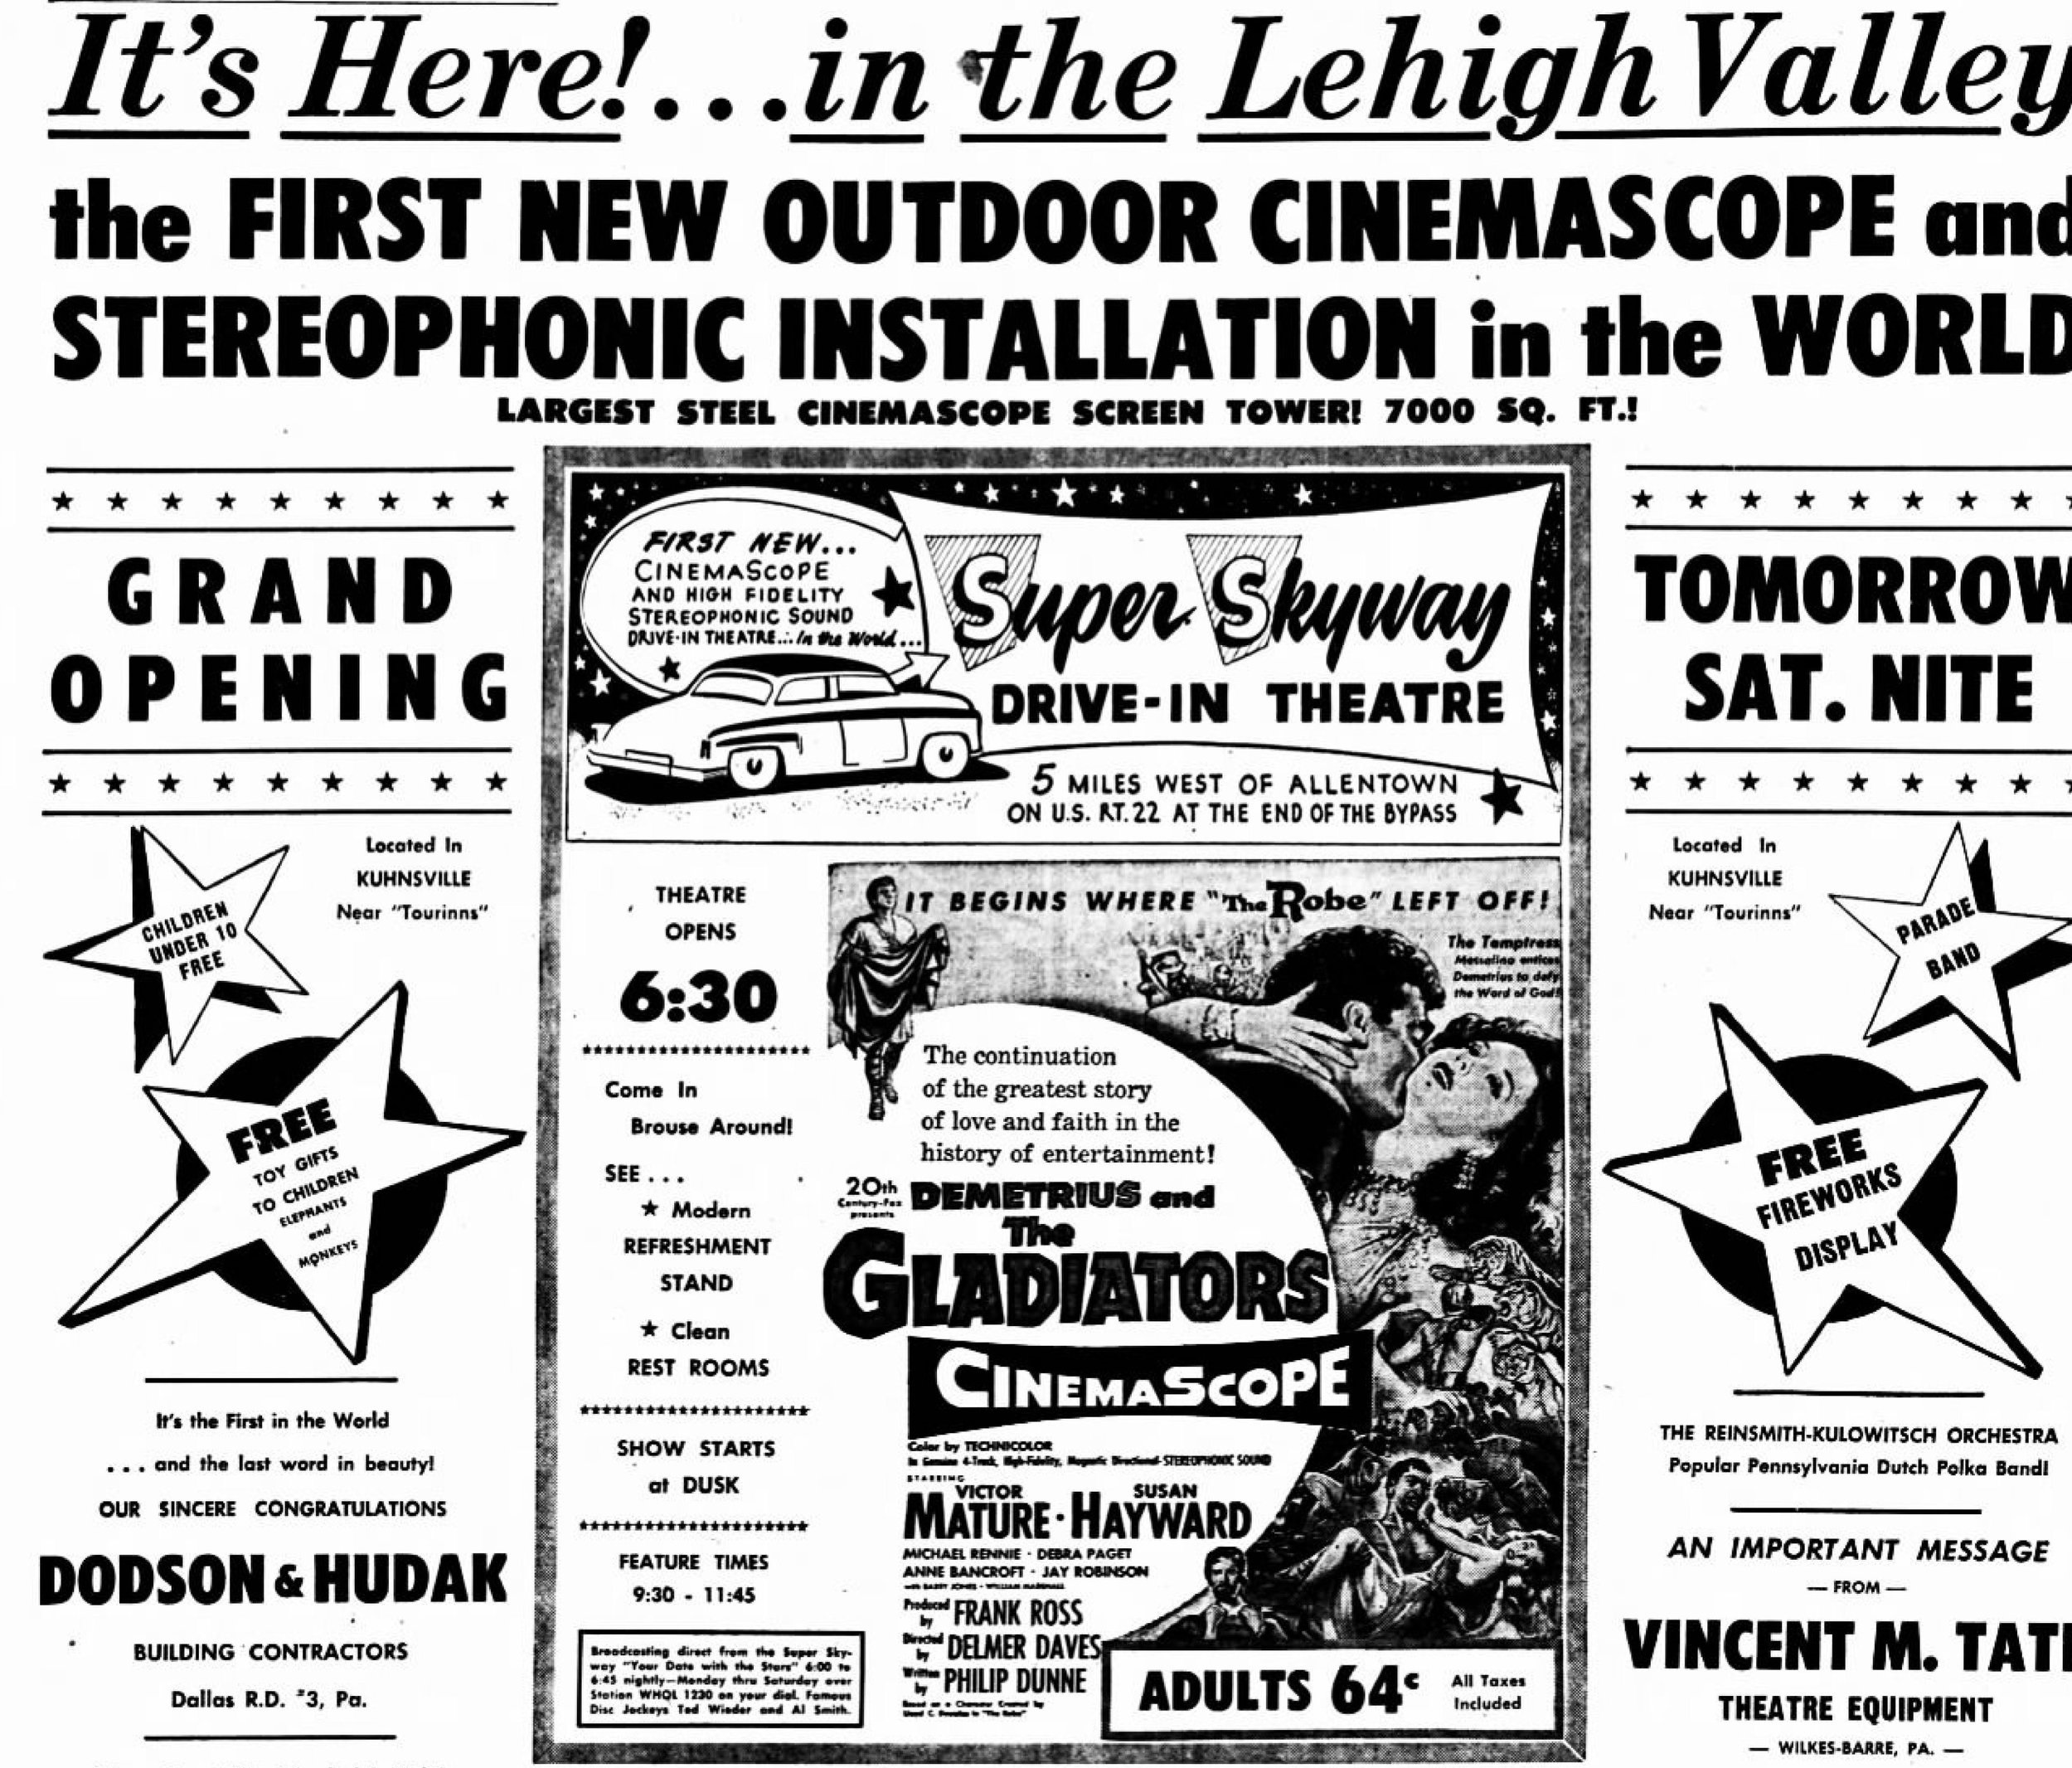 Super Skyway Drive-In theater advertisement (Aug 13, 1954  Morning Call , Allentown PA)